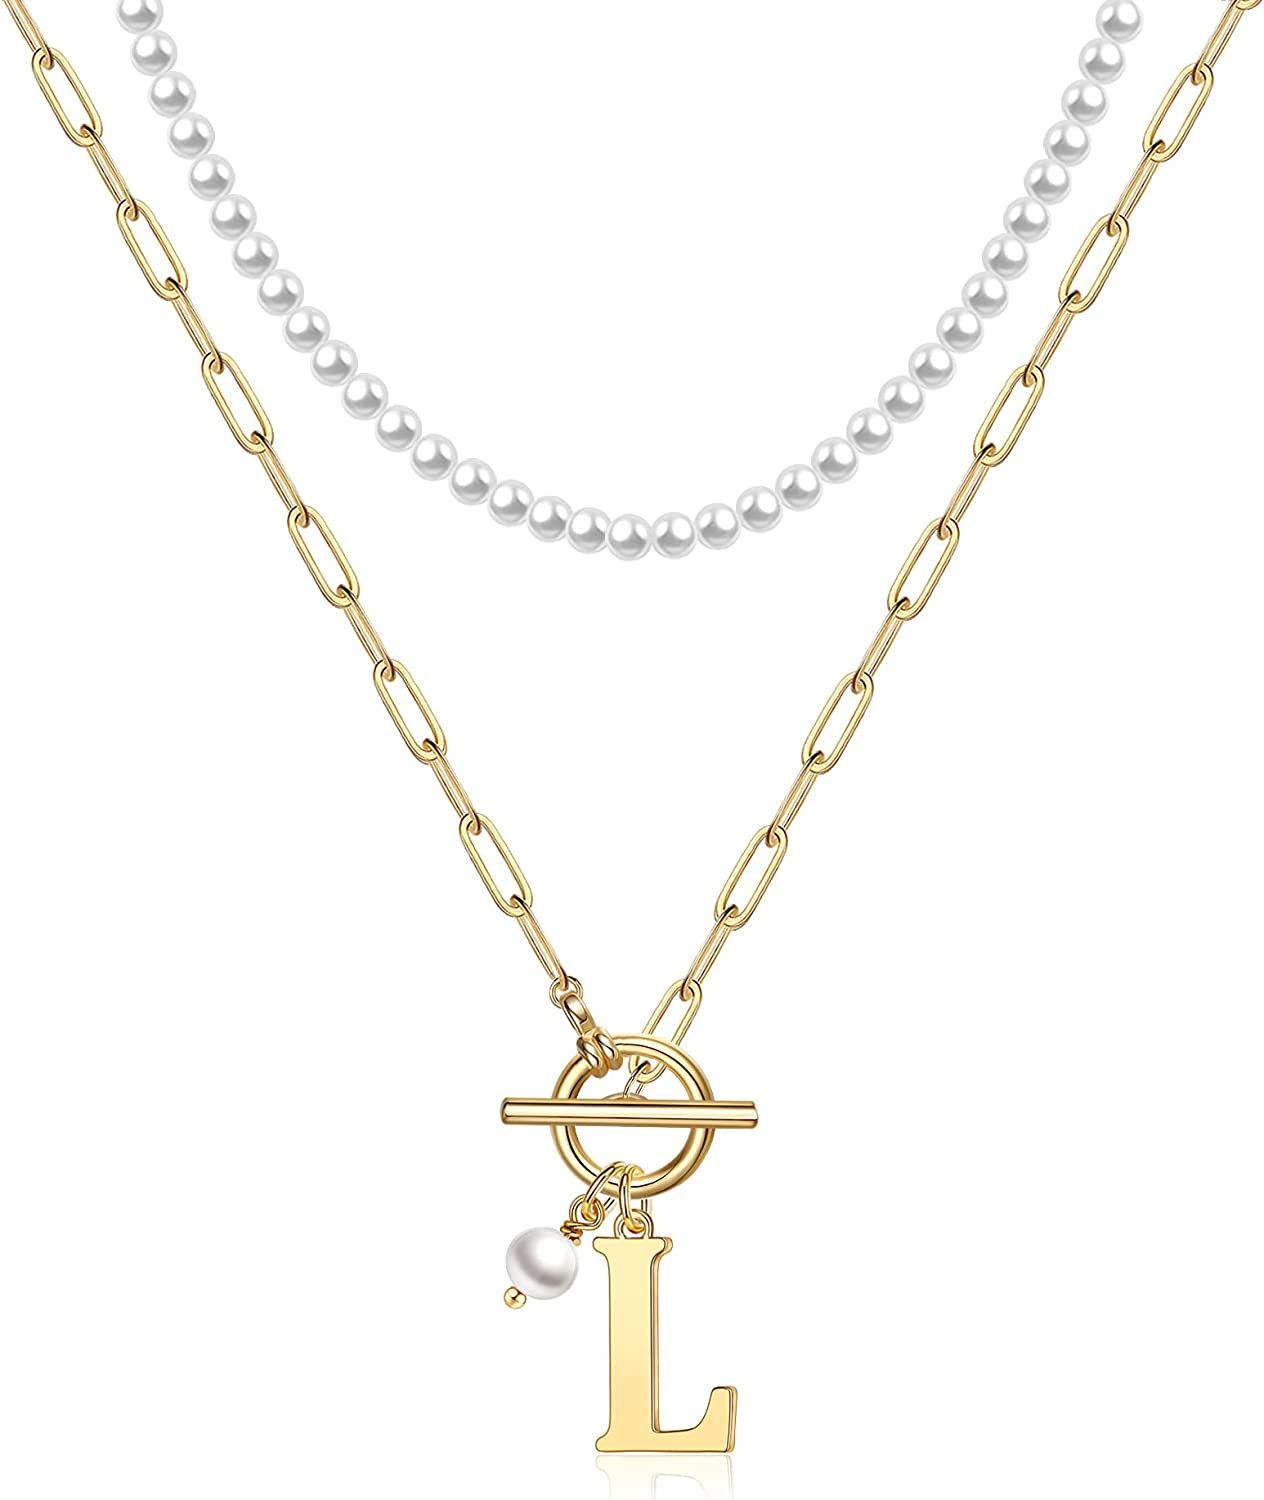 Gold Initial Pearl Necklace for Women, 14K Gold Plated Dainty Layering Paperclip Chain Necklace Toggle Clasp Choker Pearl Necklace for Women Personalized Initial Layered Gold Necklaces for Women